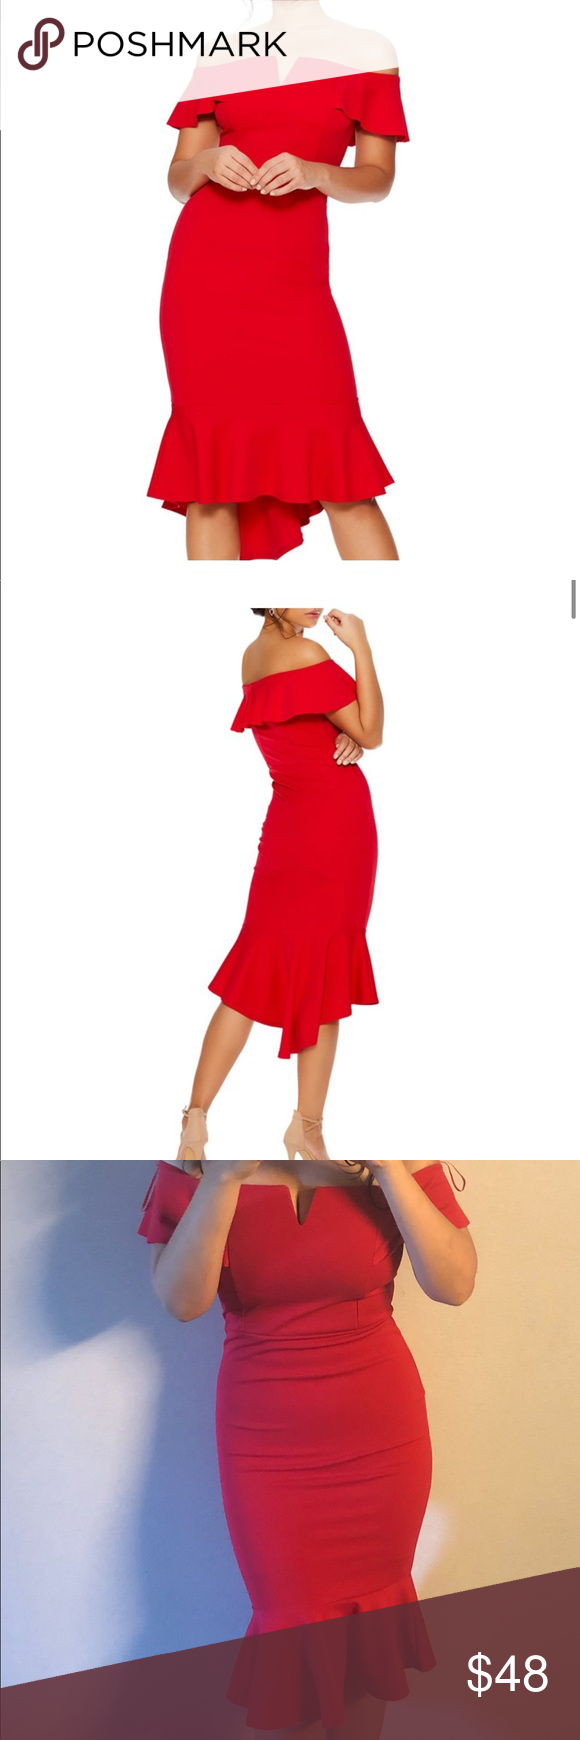 Quiz Red Dress Quiz Off The Shoulder Red Dress Size 6 Form Fitting Worn Once To A Wedding Endless Compliments People Kep Red Dress Dresses Mini Dress